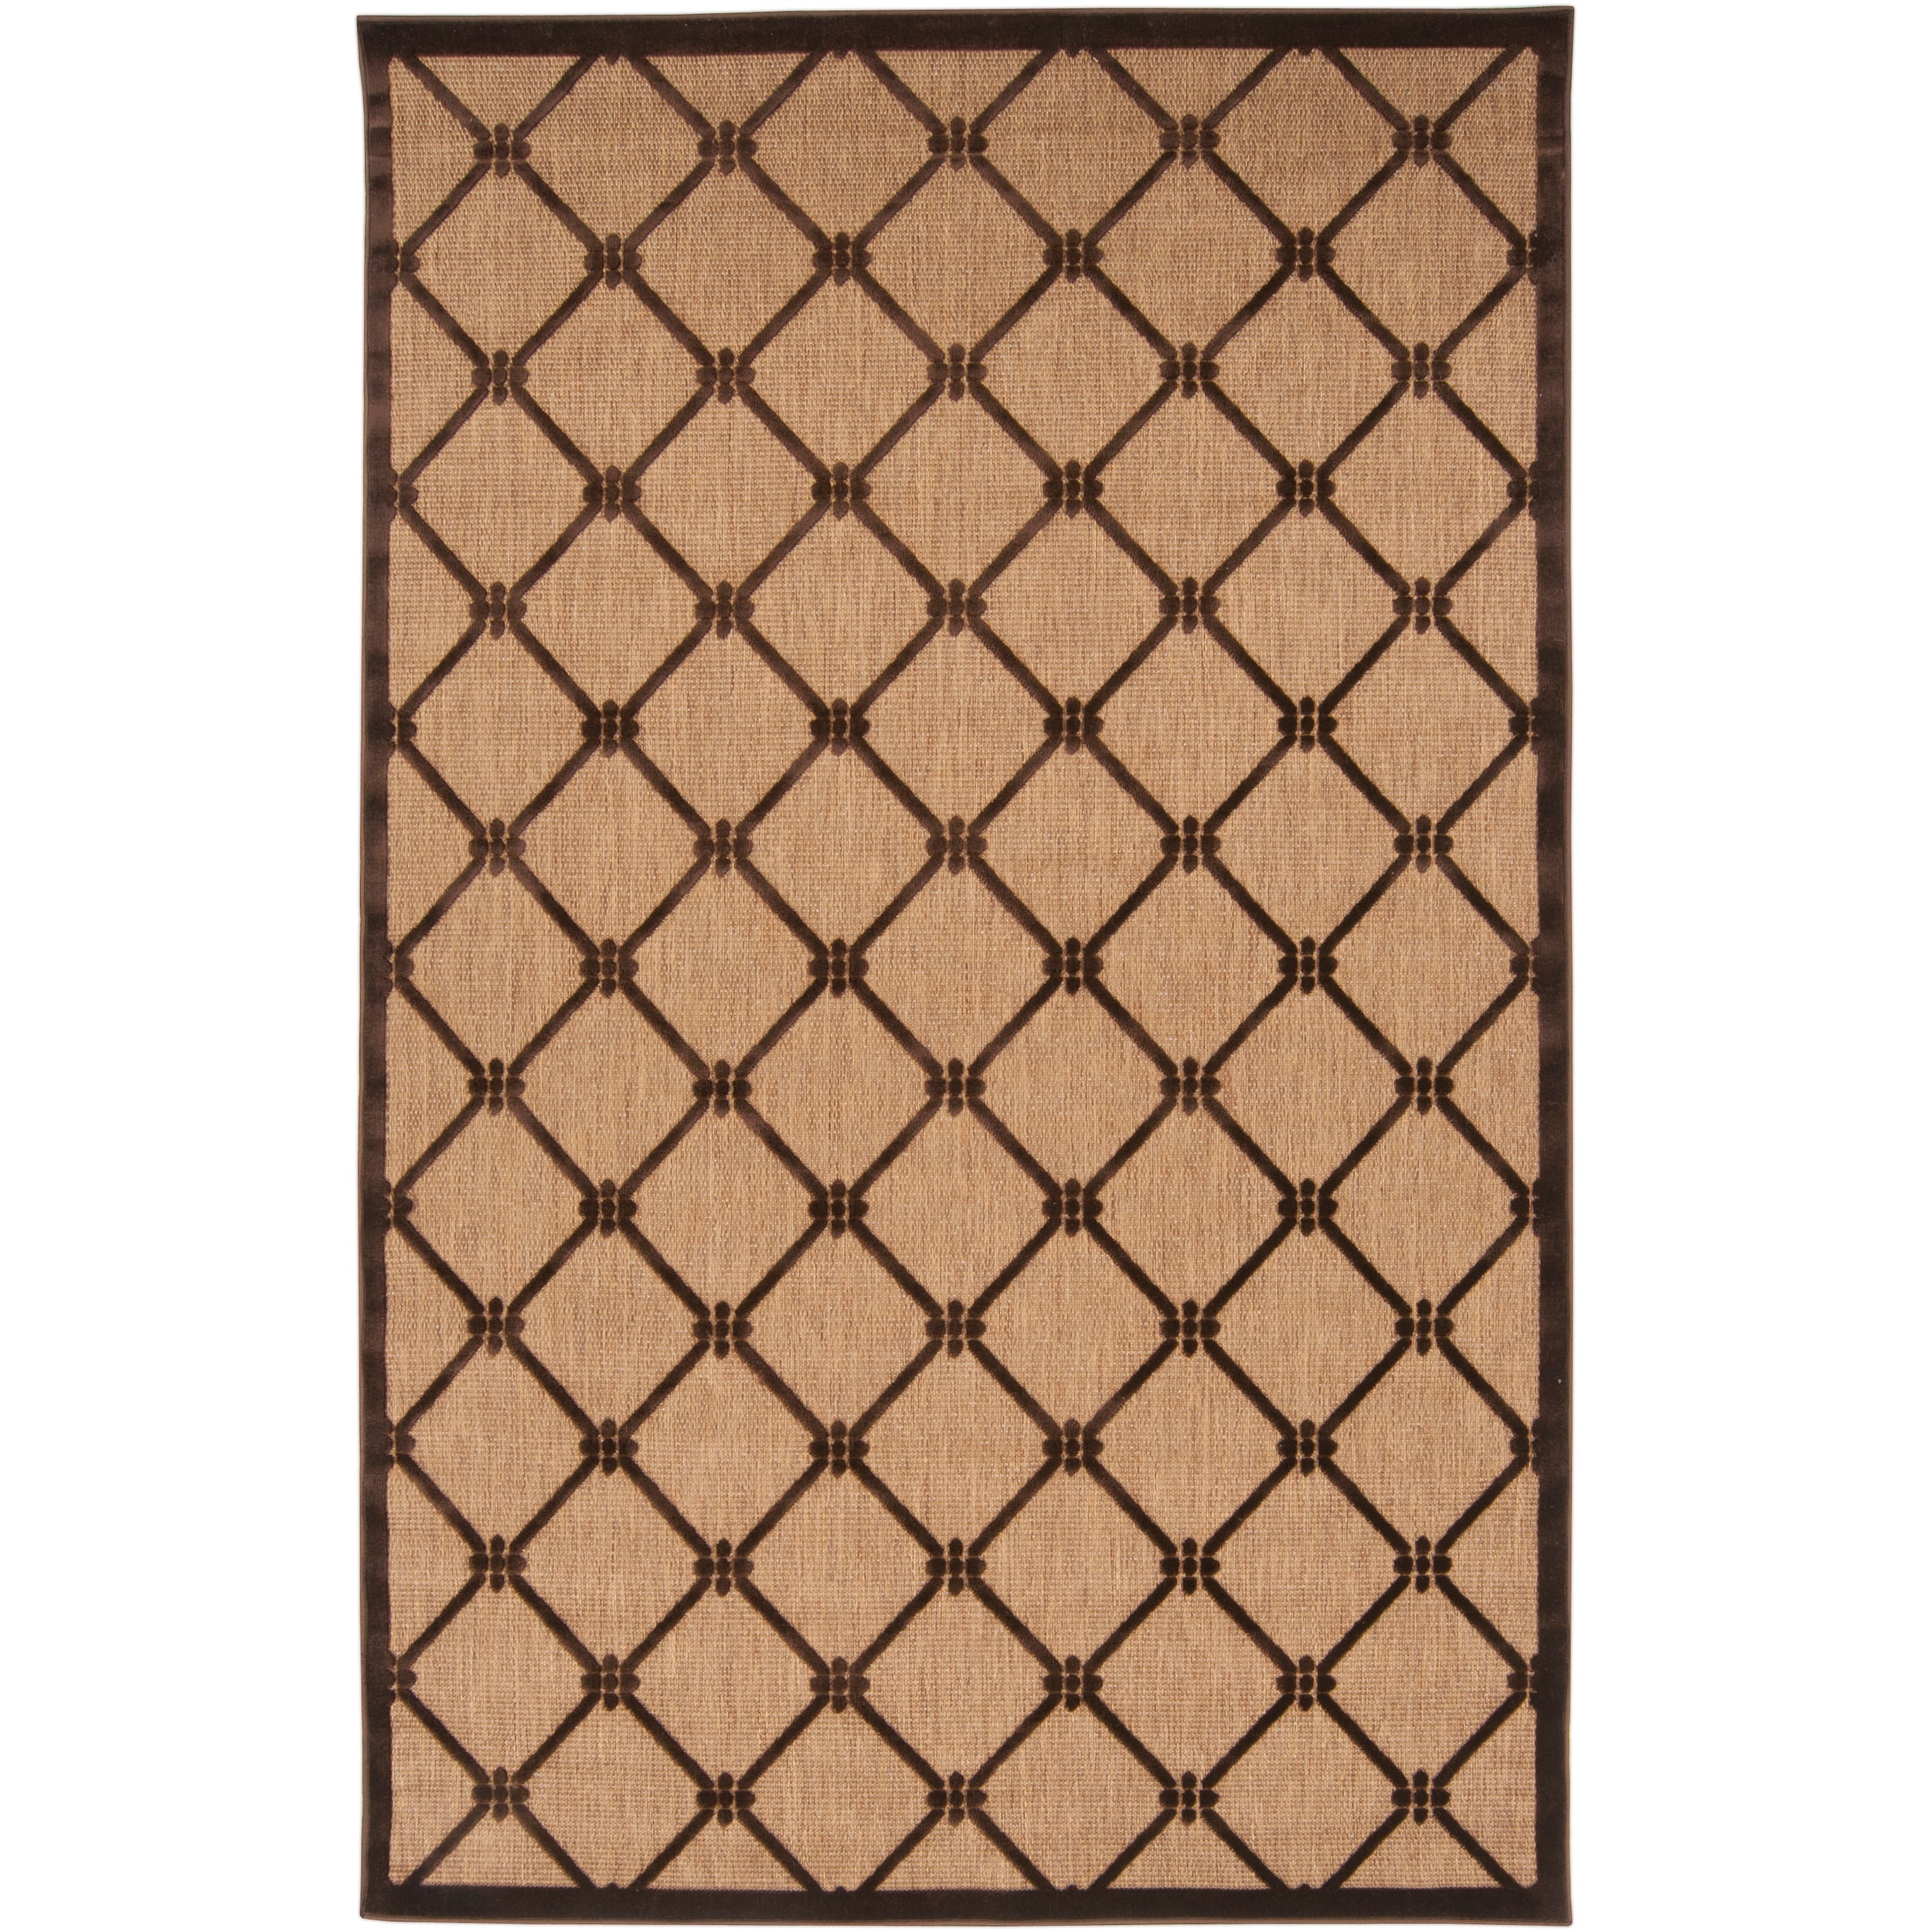 Baffin Indoor/Outdoor Geometric Area Rug (7'10 x 10'8) - 7'10 x 10'8